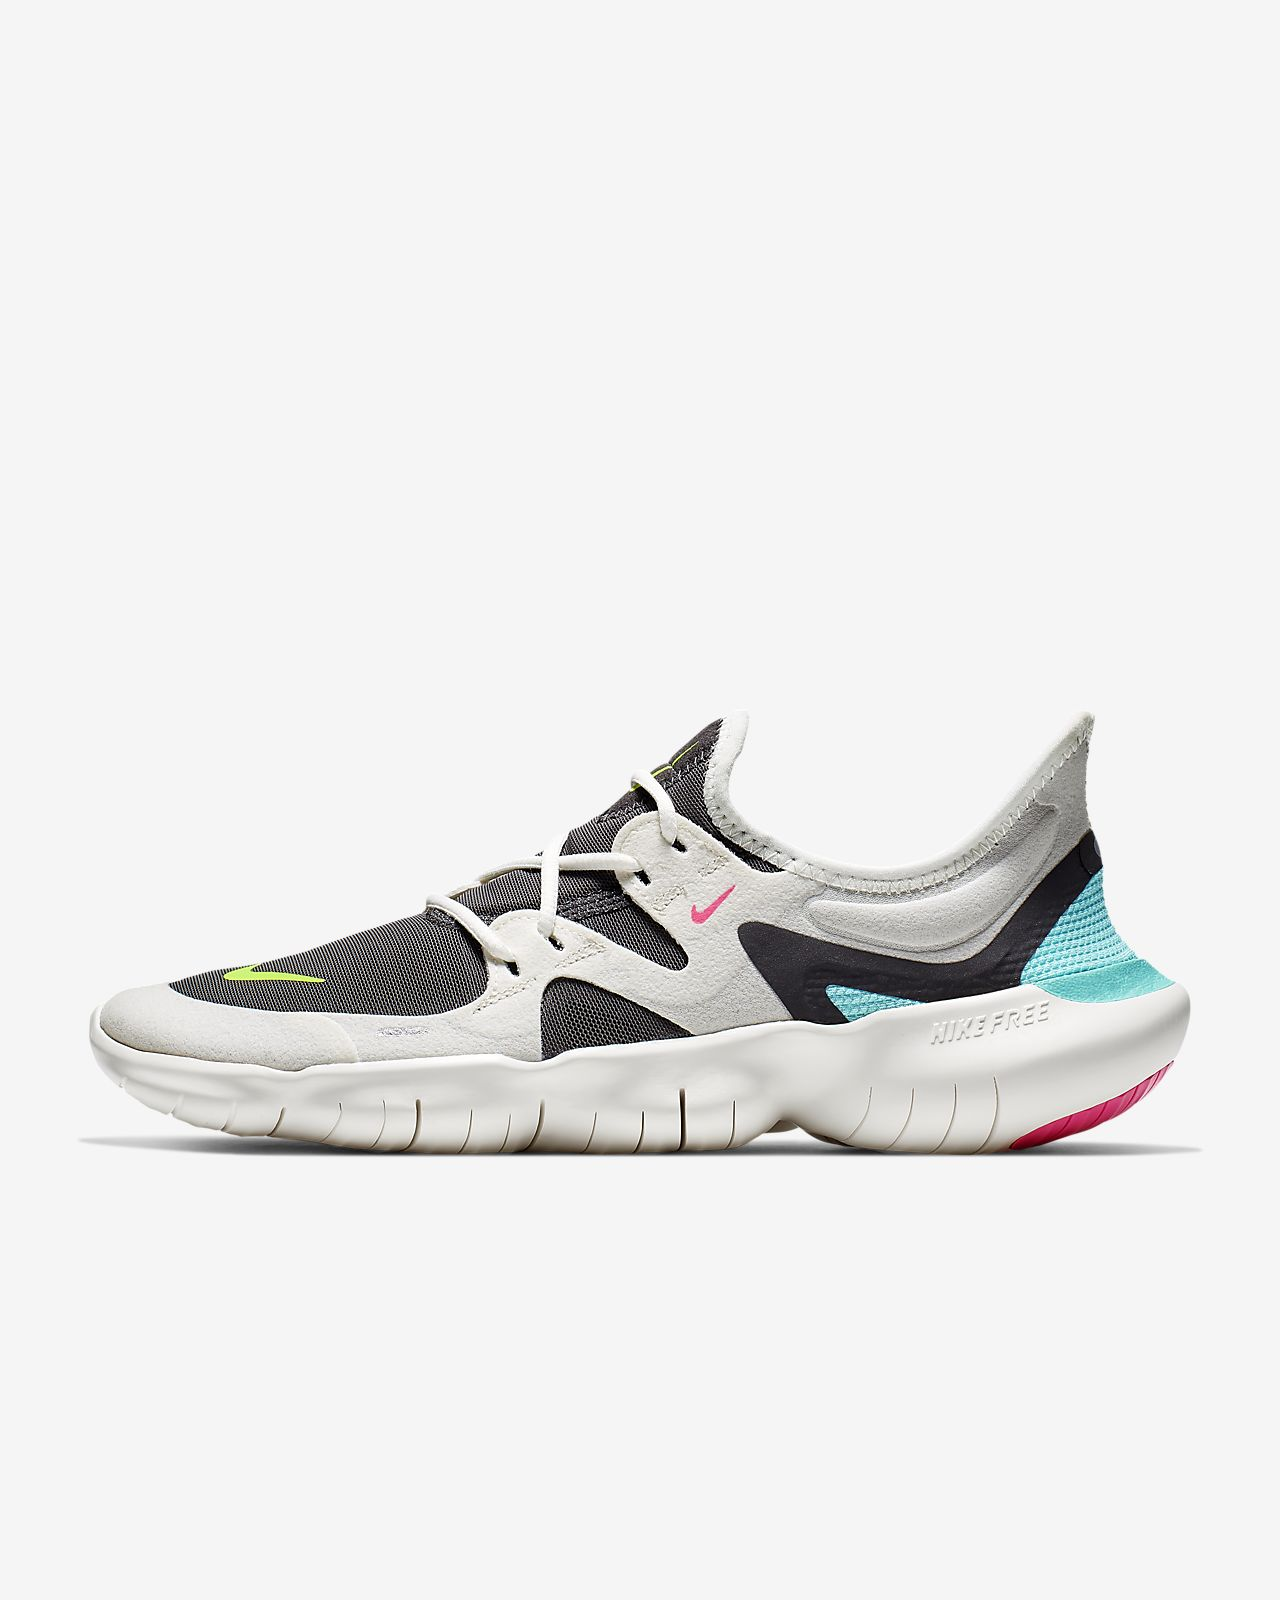 buy online 17933 1cde8 Women s Running Shoe. Nike Free RN 5.0